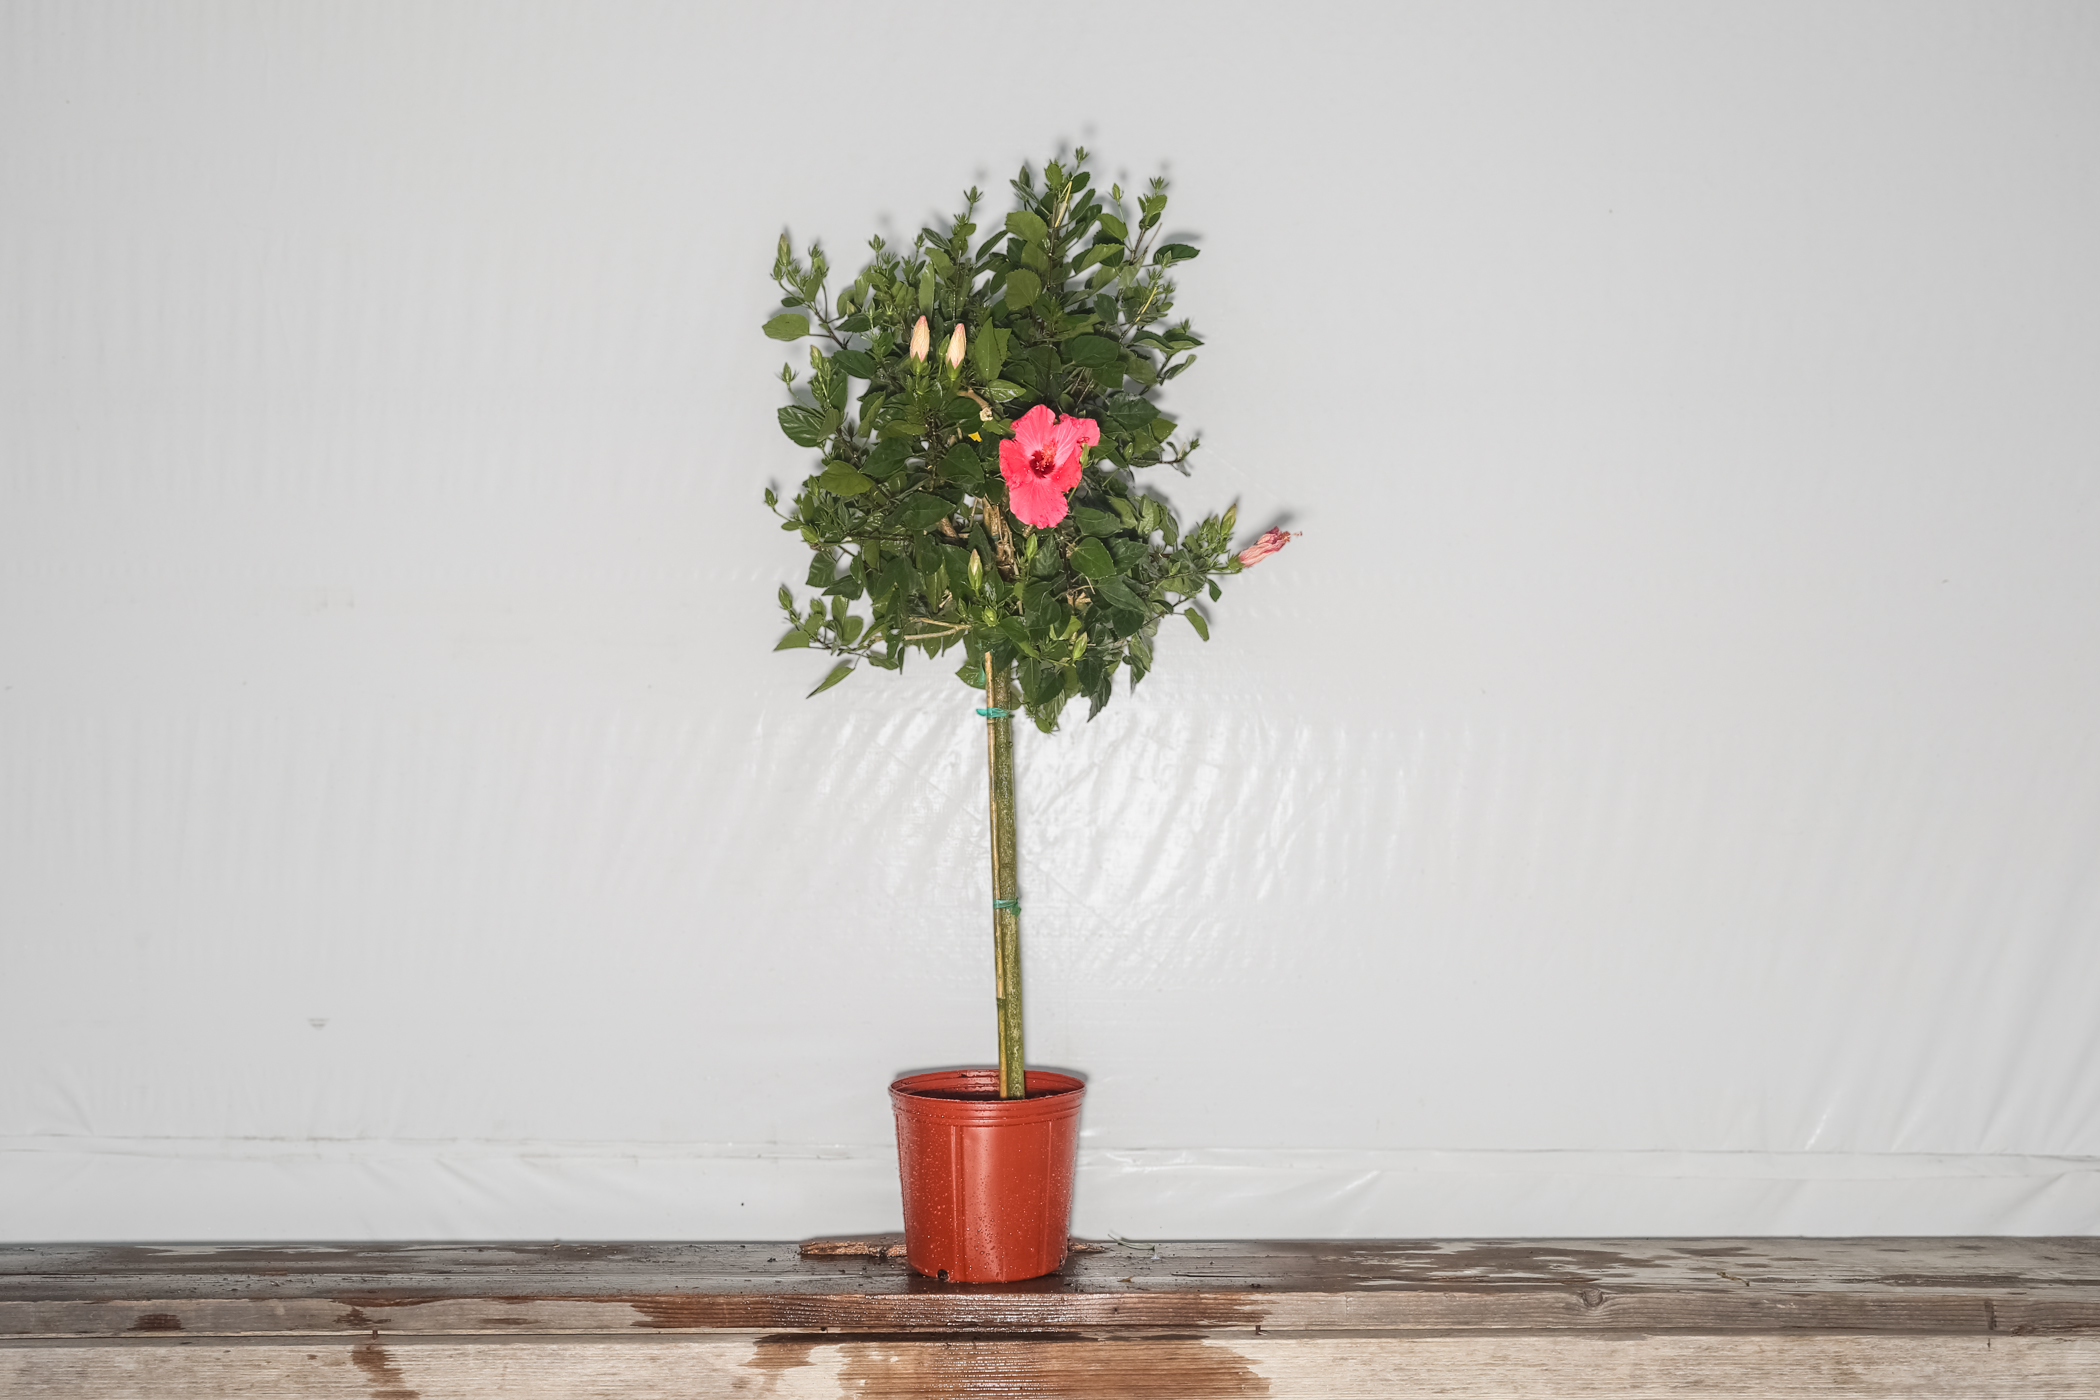 Hibiscus Standard Pink Painted Lady Tree 3 Gallon